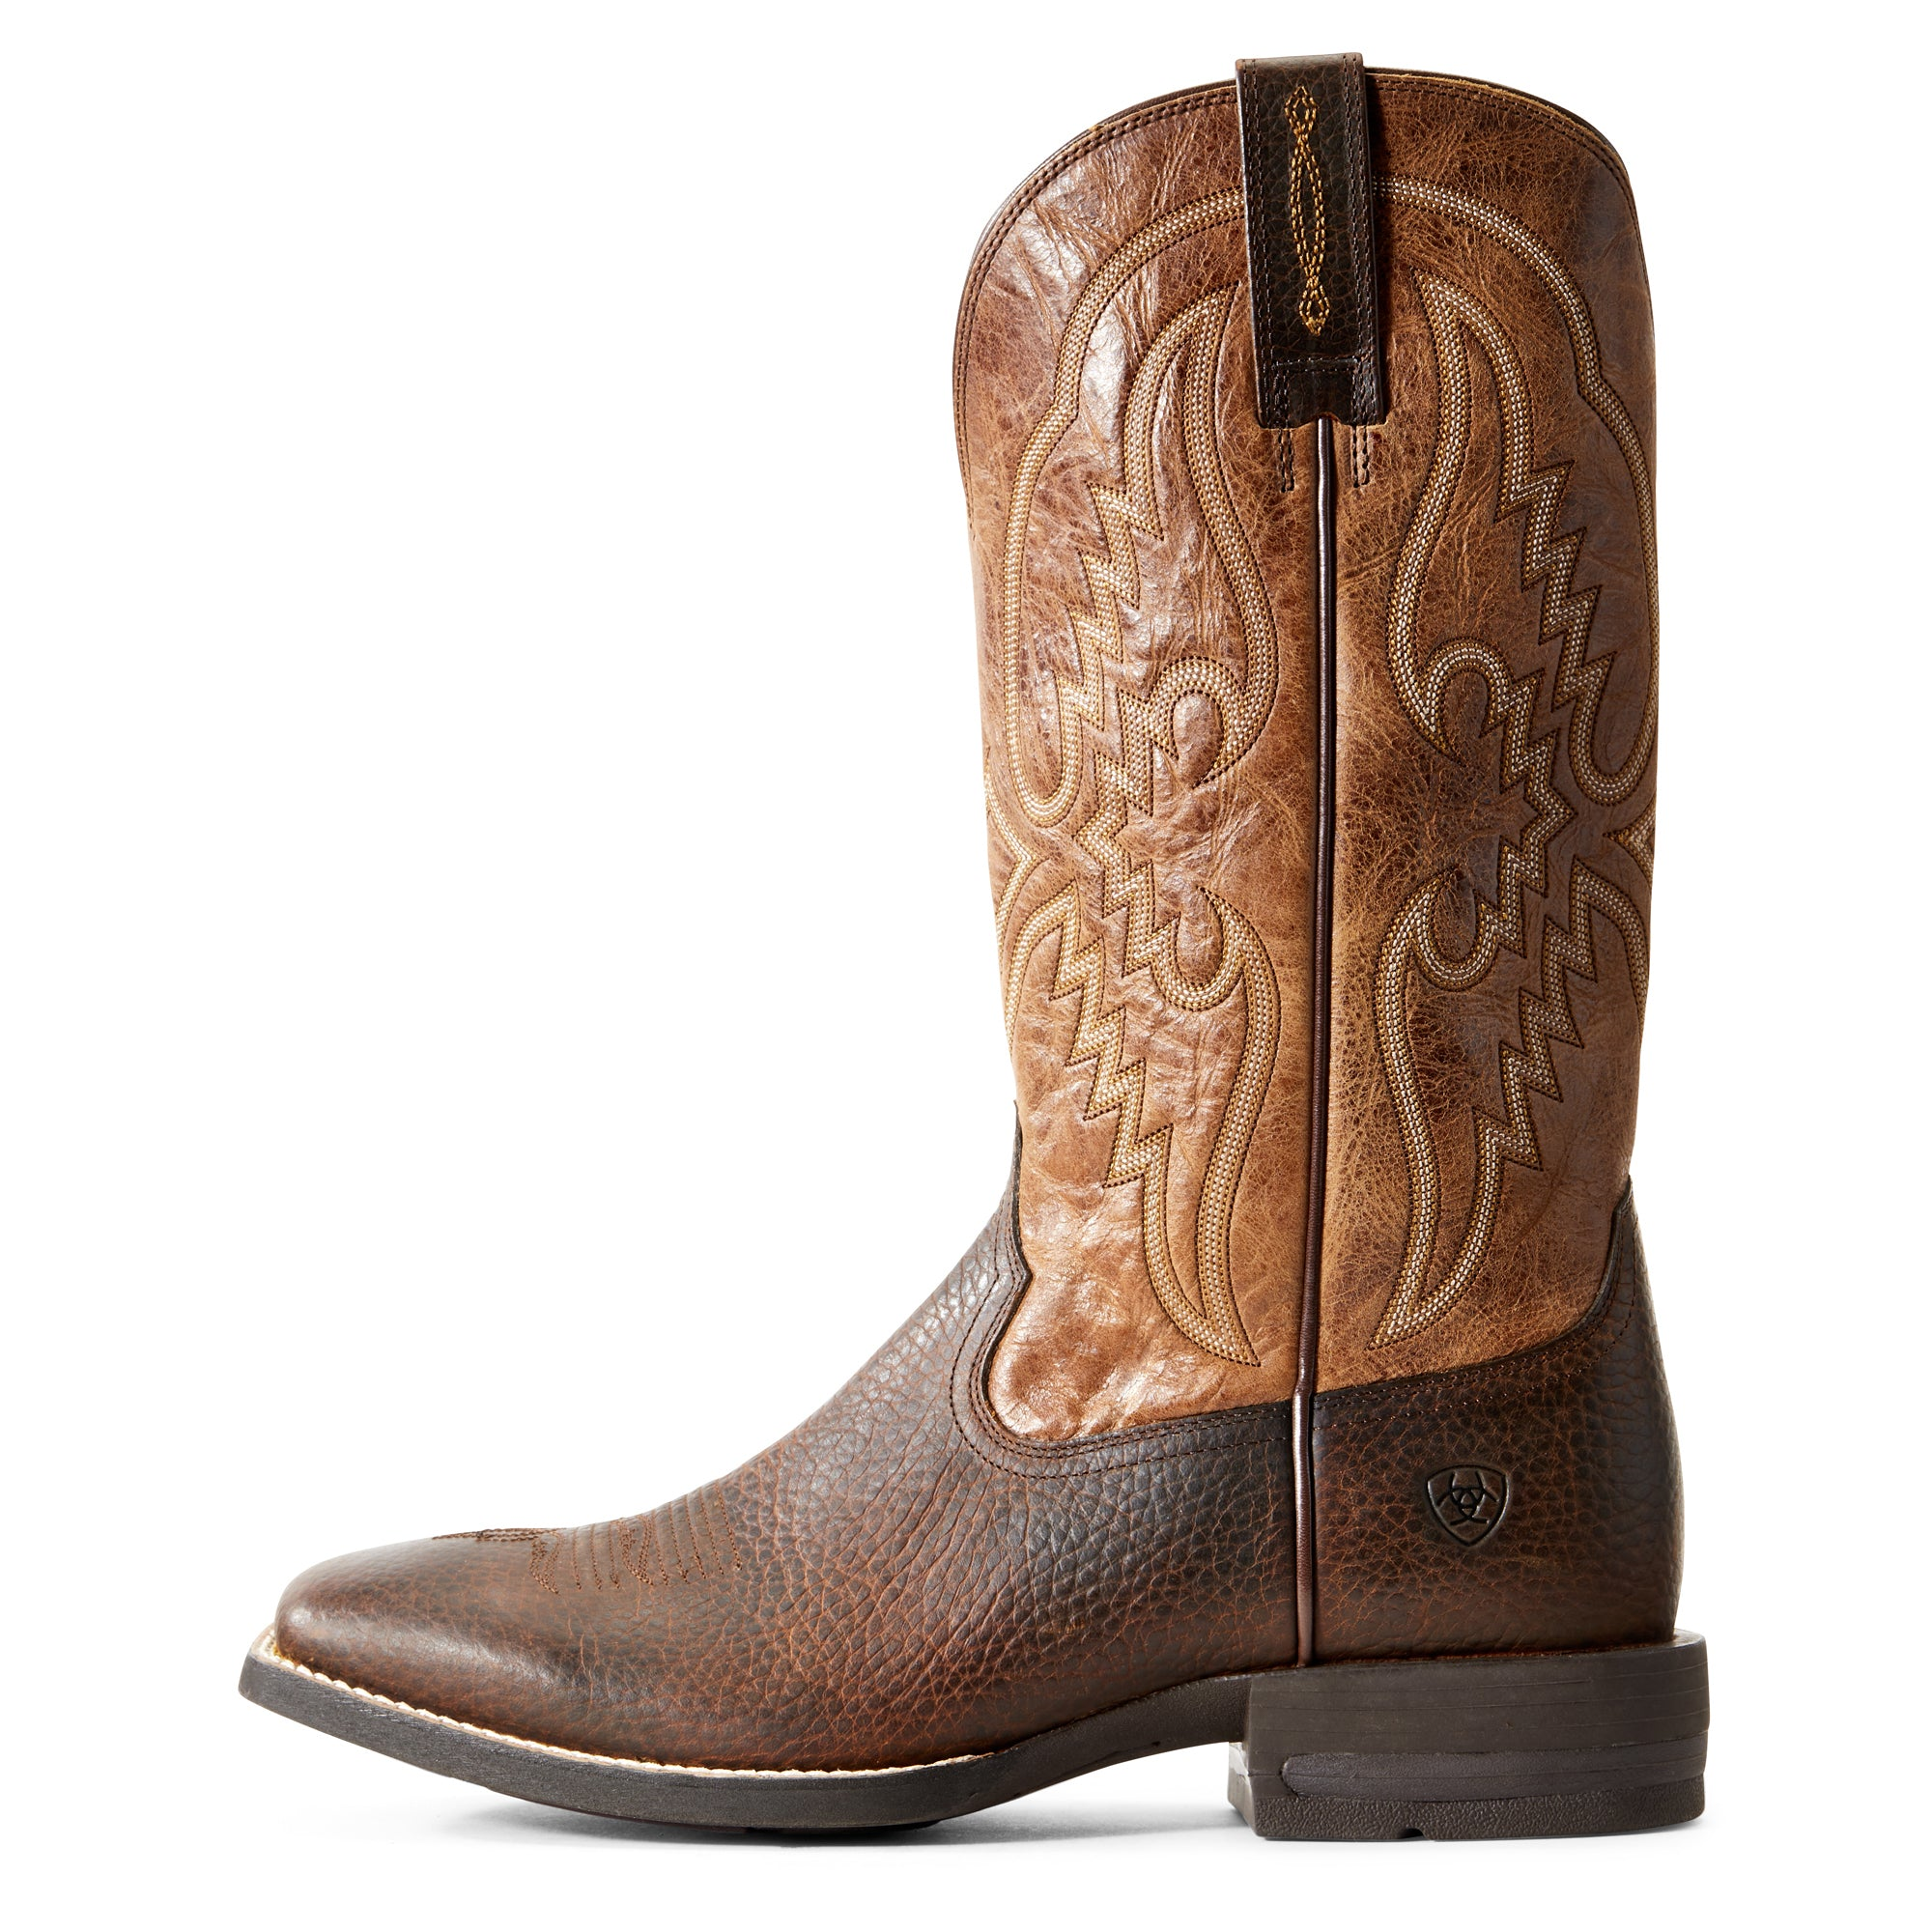 'Ariat' Men's 13